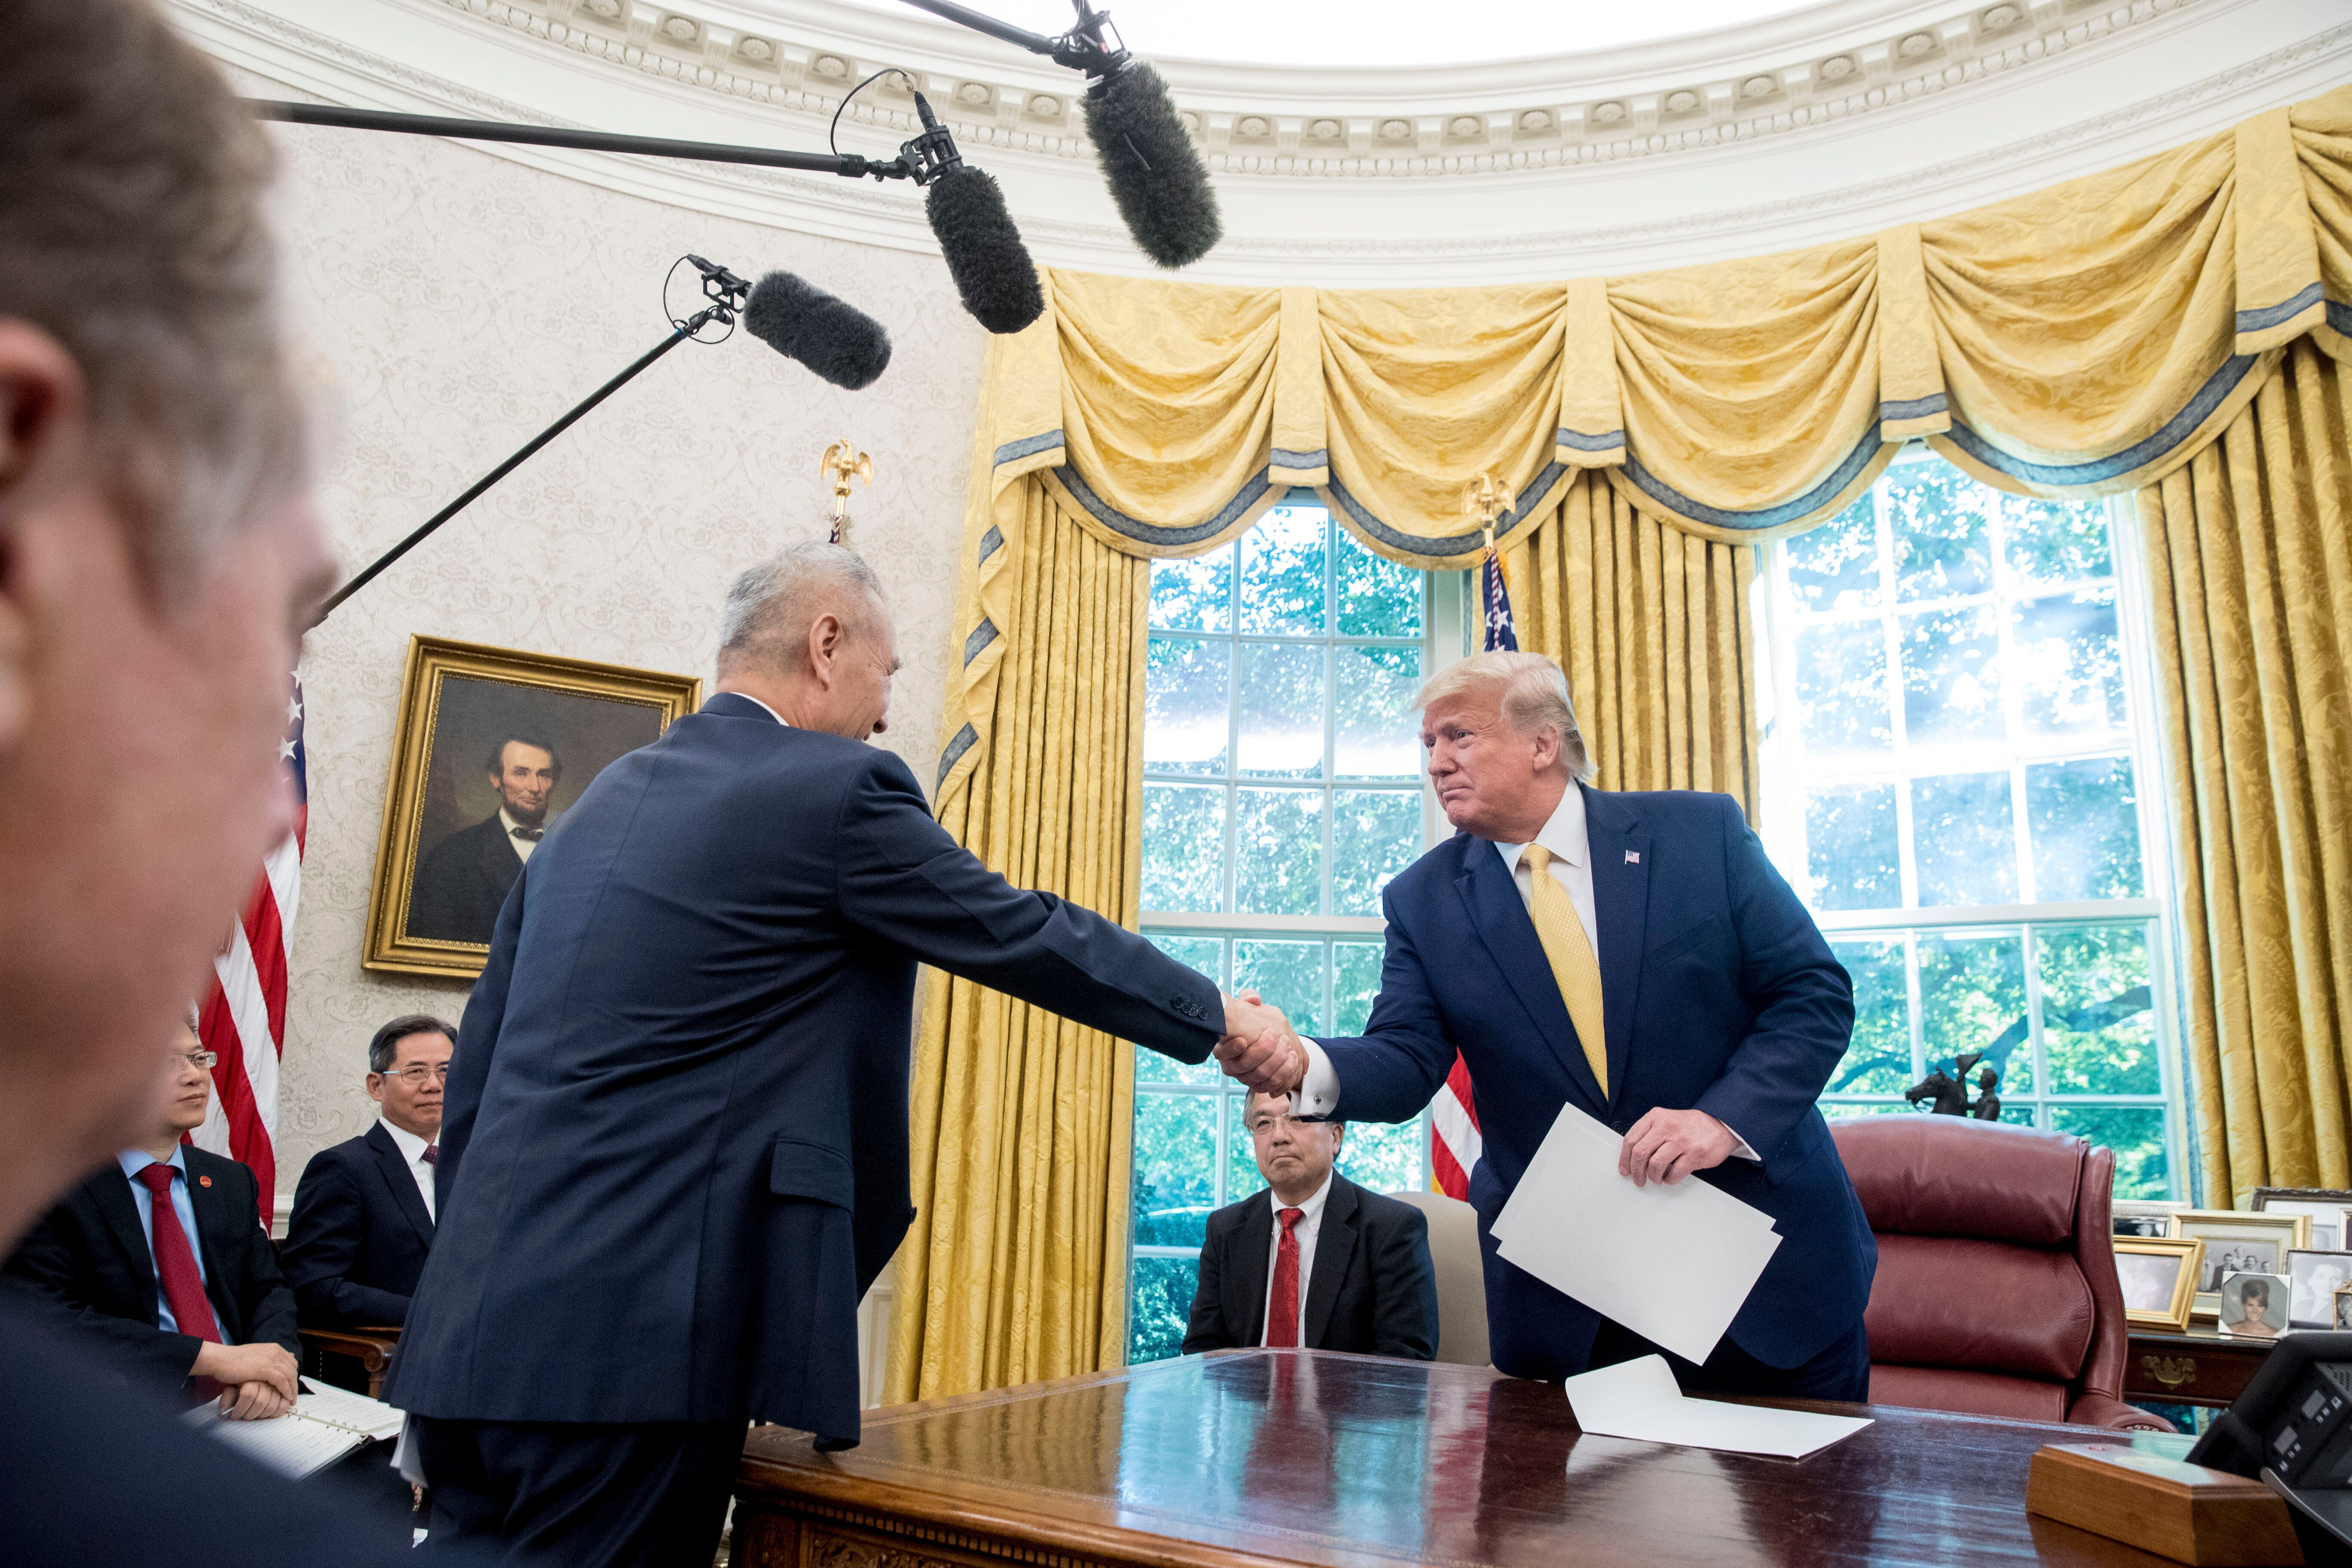 President Donald Trump shakes hands with Chinese Vice Premier Liu He after being given a letter in the Oval Office of the Whi